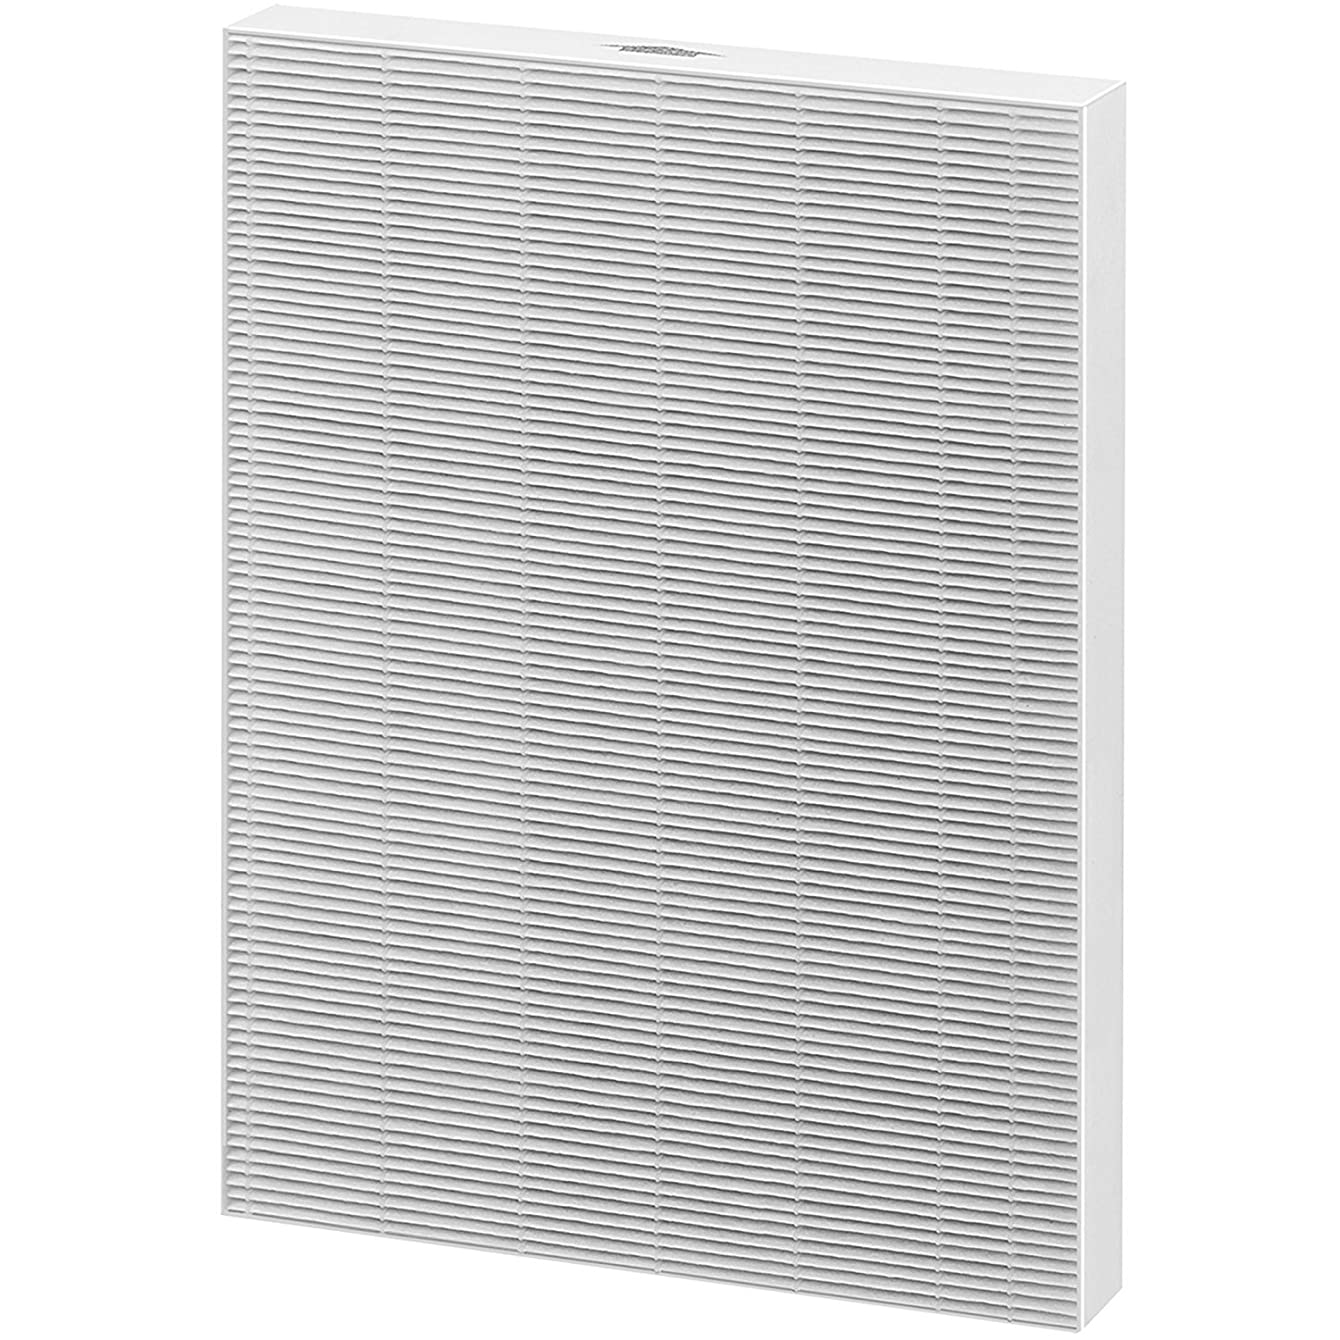 Nispira HEPA Air Filter Compatible with Fellowes AeraMax 200 Purifier Model 190/200/DB55/DX55. Compared to Part 9287101, 1 Unit